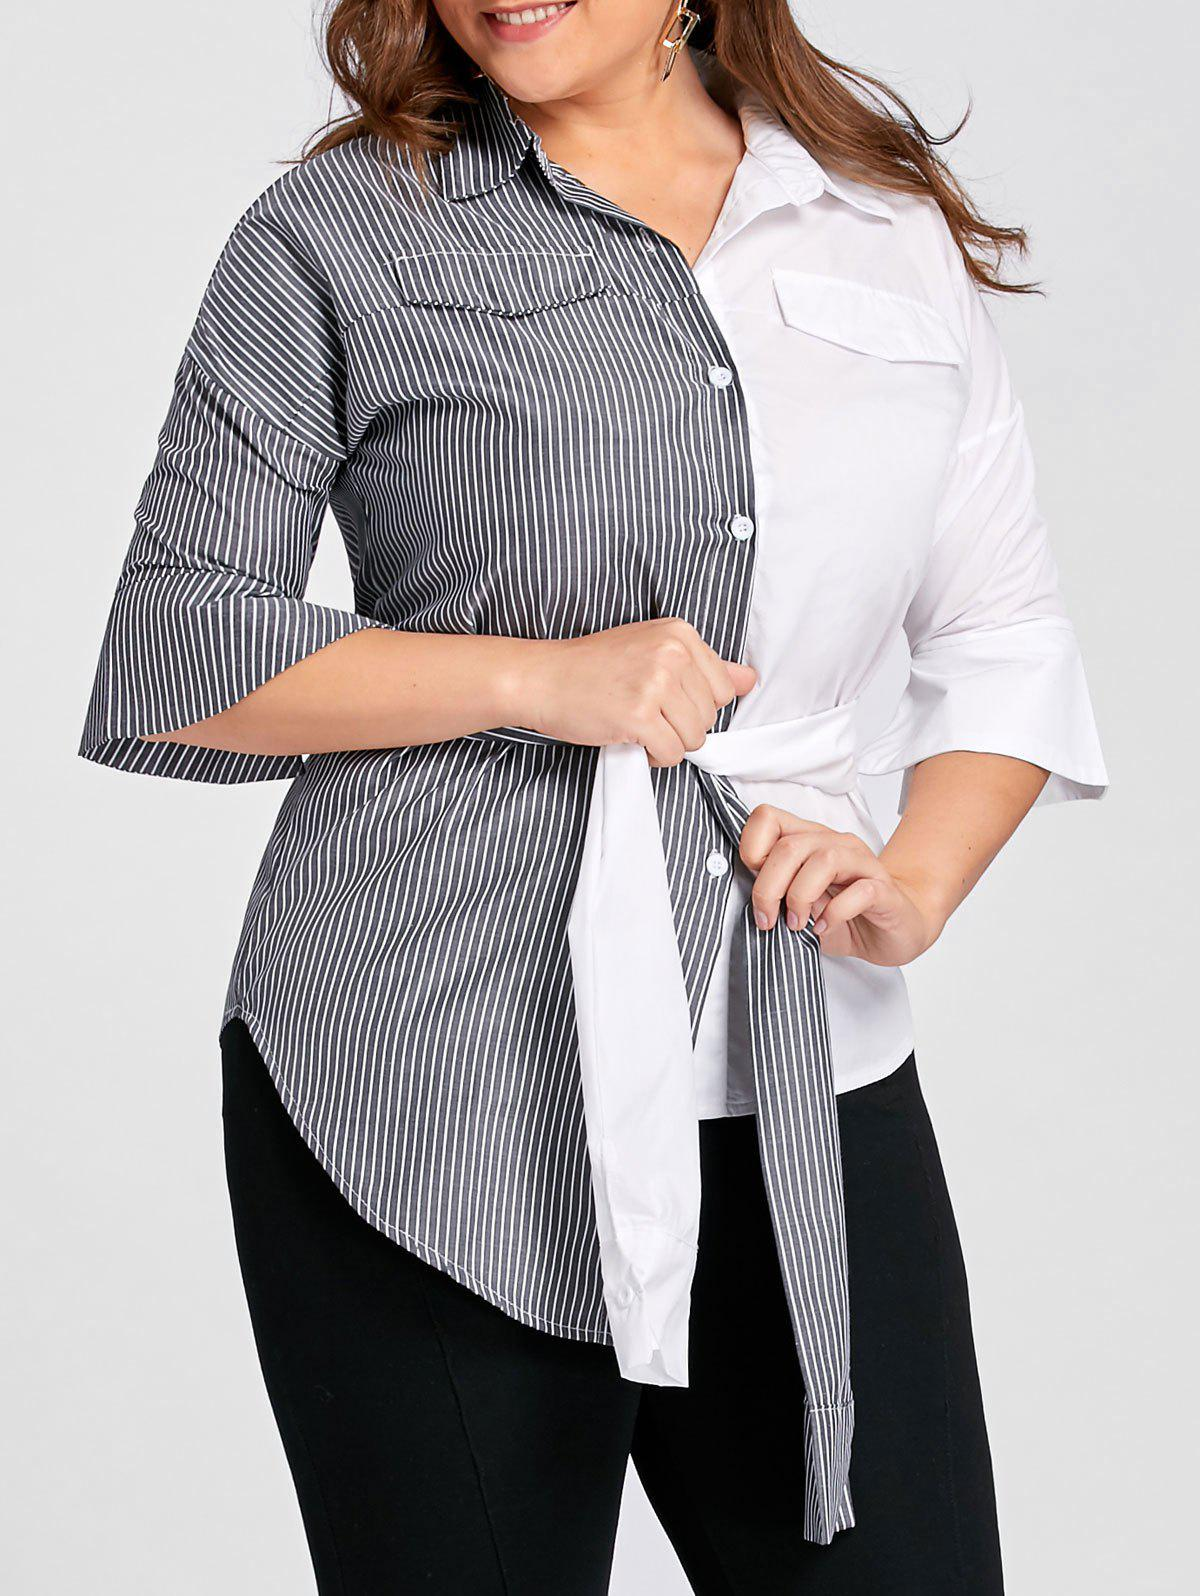 Plus Size Contrast Stripe Shirt with Belt - GREY/WHITE 3XL